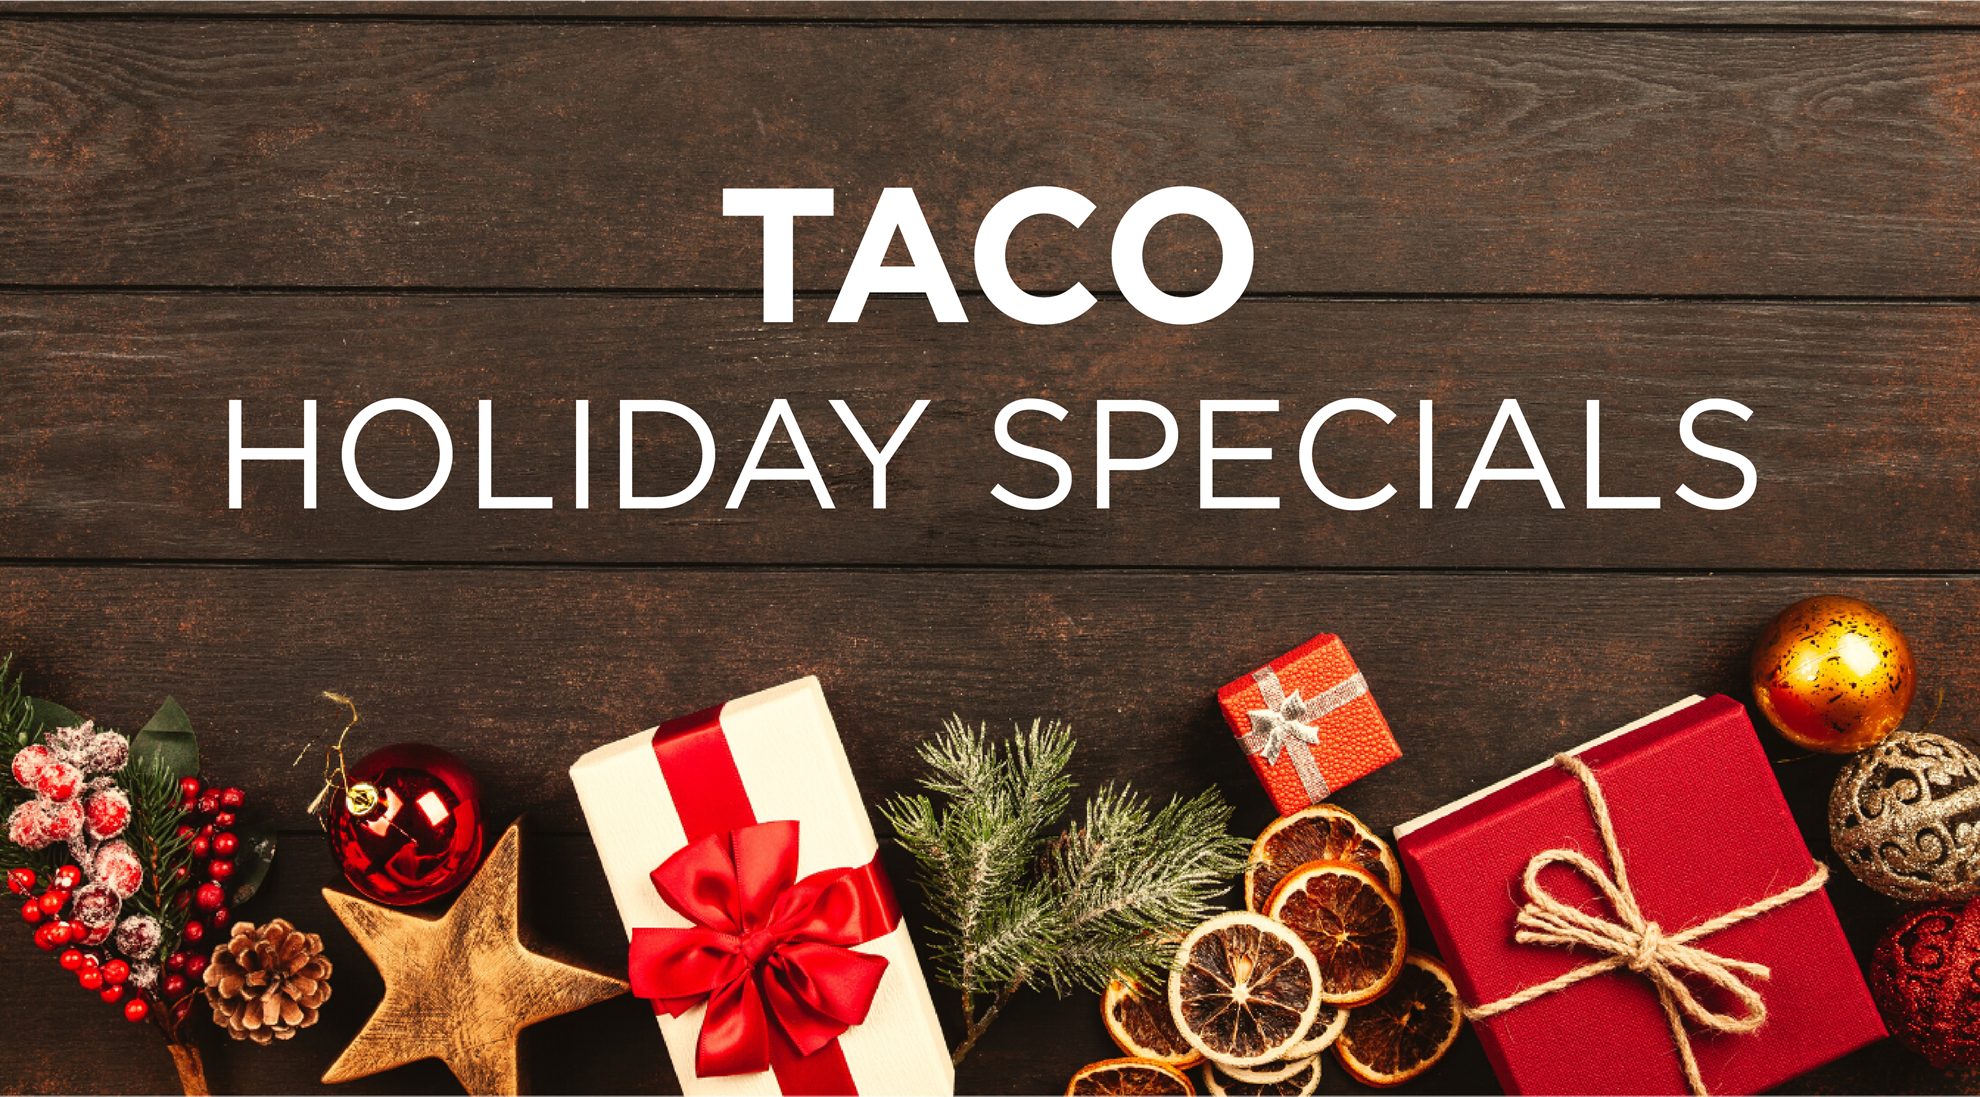 Shop TACO Holiday Specials for Boaters!